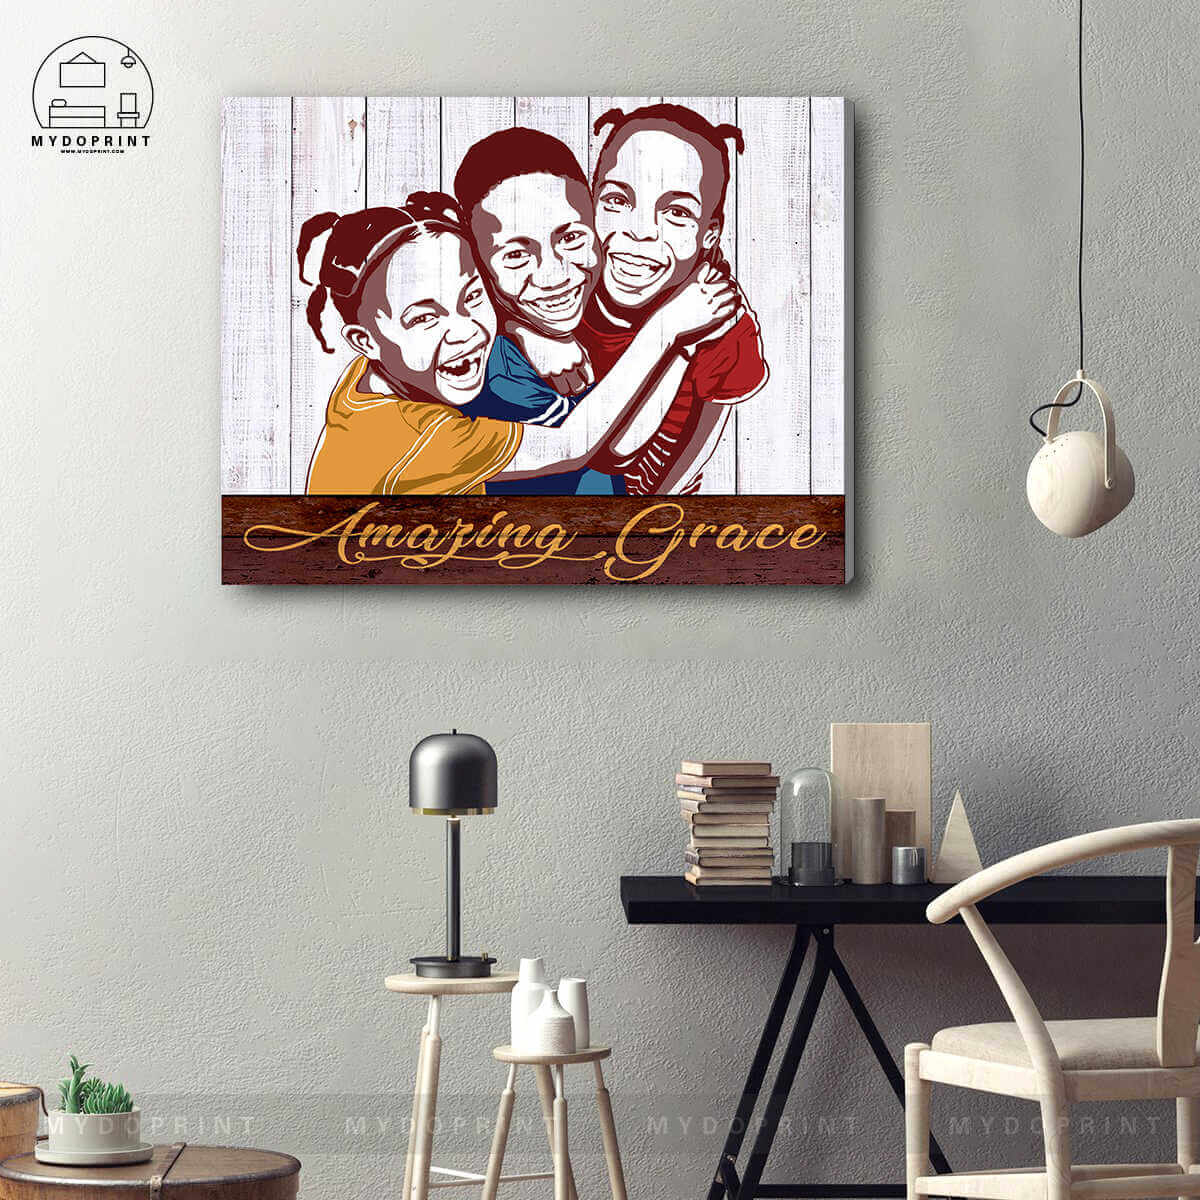 Mydoprint Amazing Grace Wall Art Canvas – Mydoprint Throughout Best And Newest Blended Fabric Amazing Grace Wall Hangings (View 2 of 20)